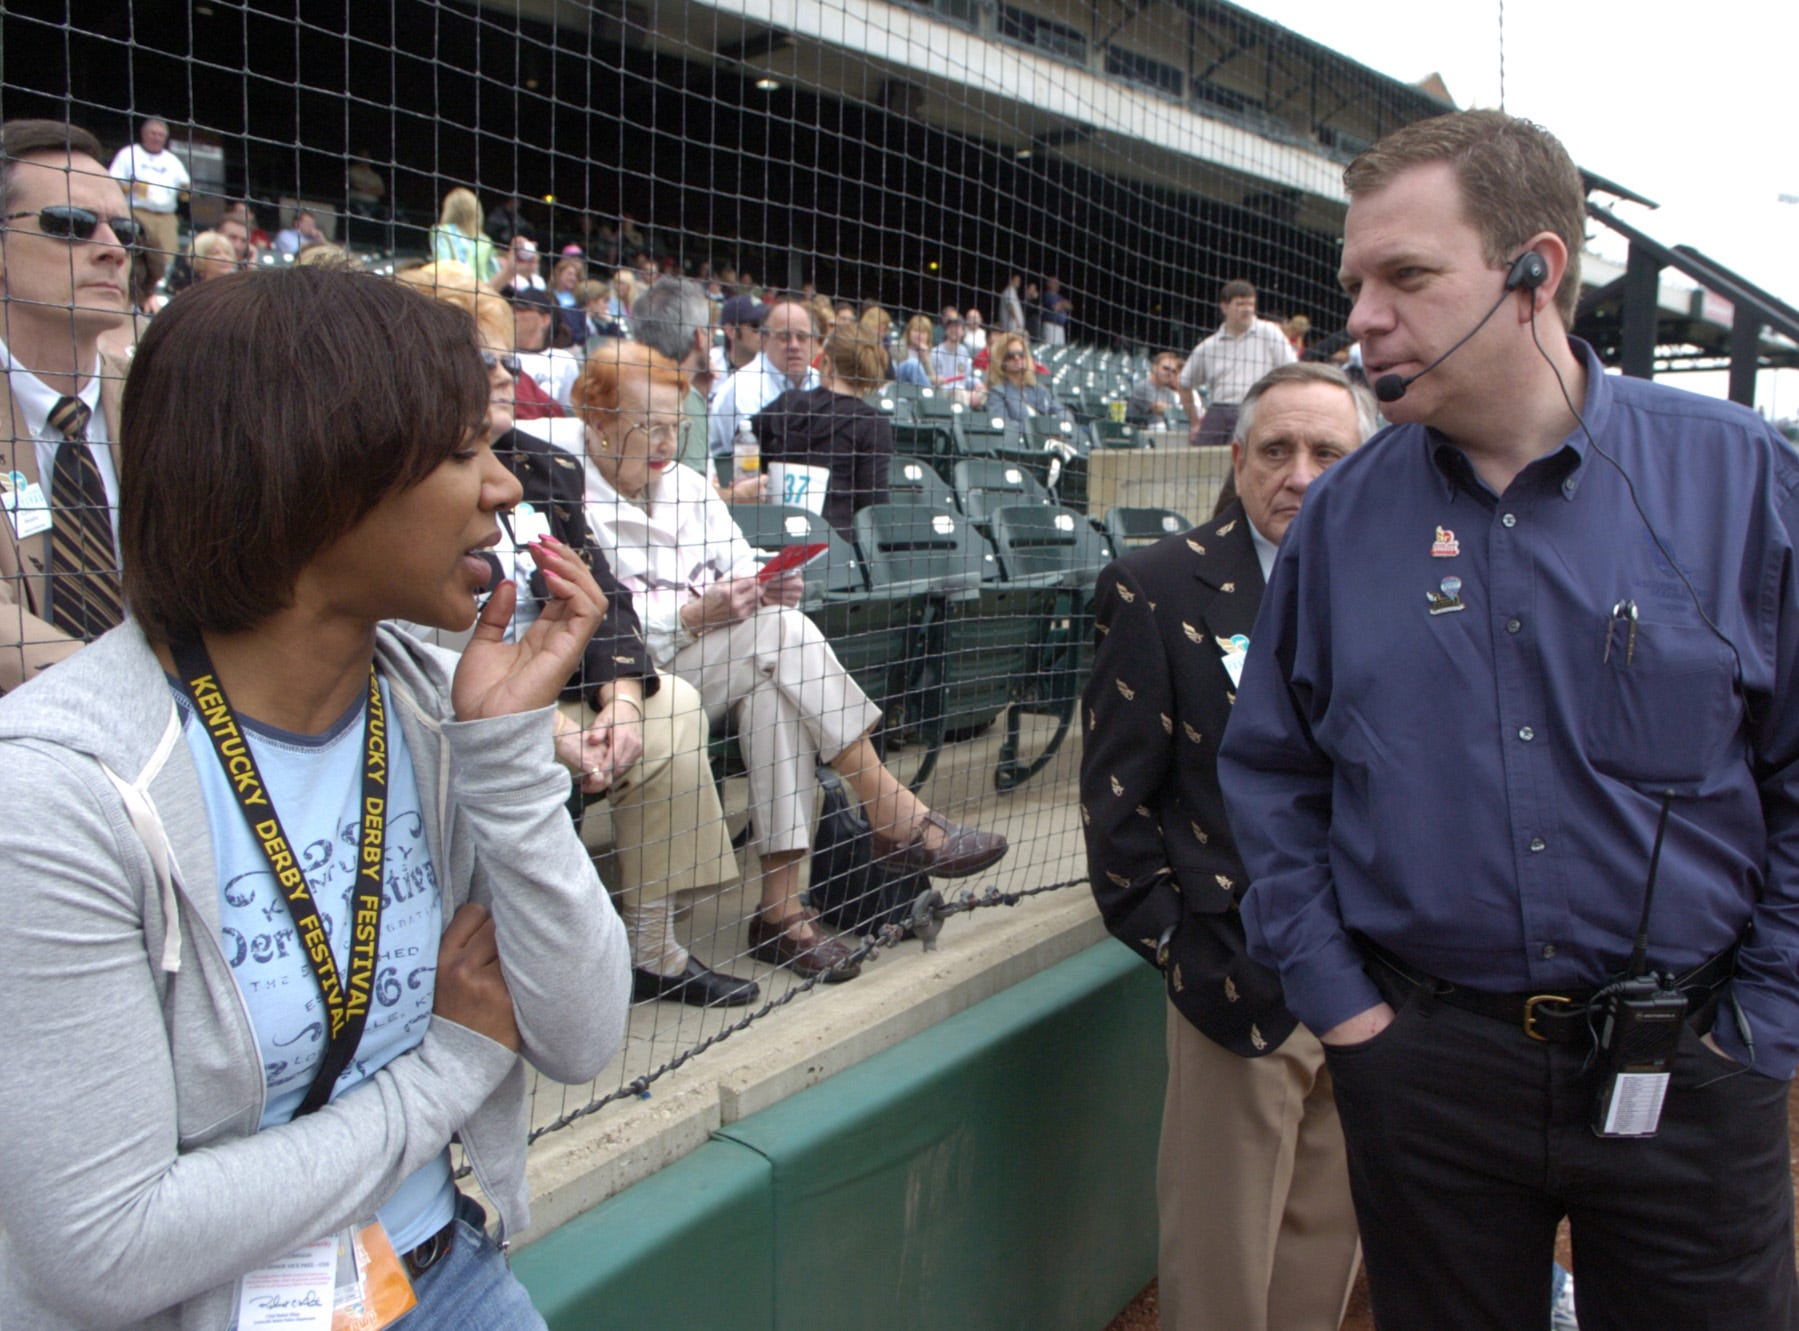 Mike Berry, president and CEO of the Kentucky Derby Festival, and Stacey Robinson, executive VP and chief of staff, pictured in 2006.